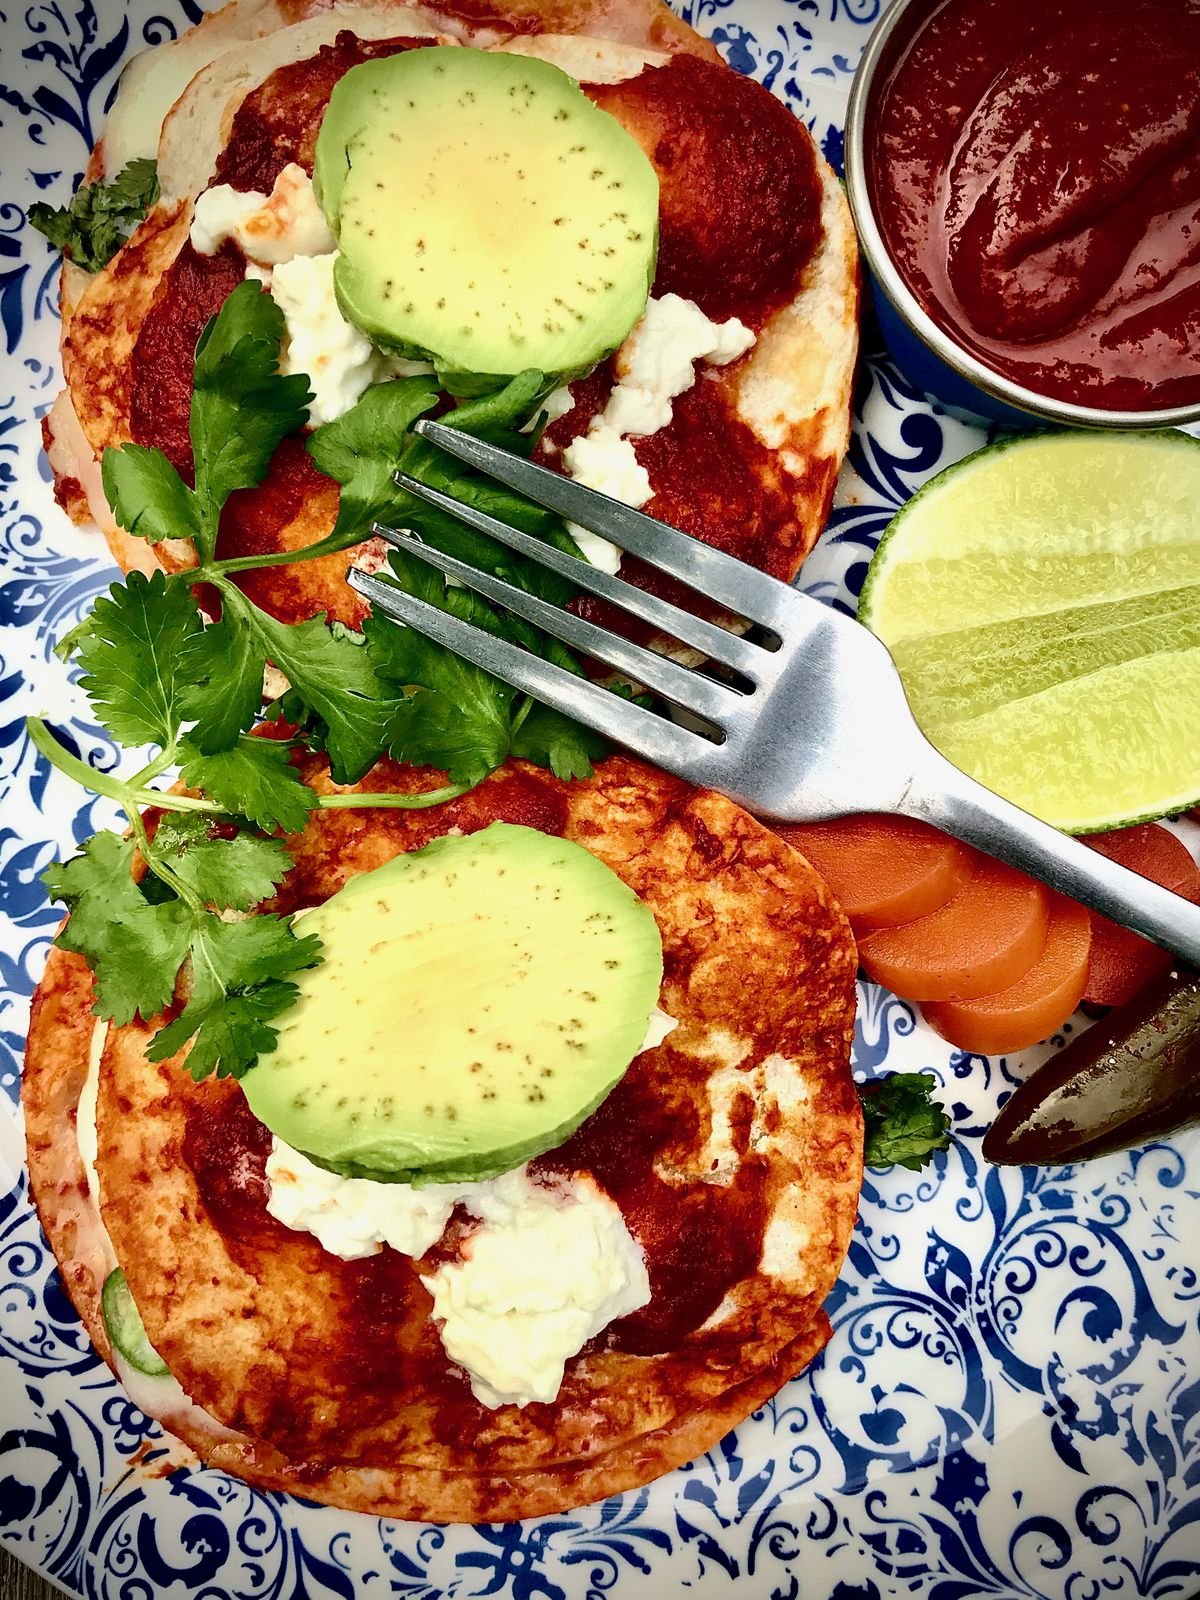 A metal forn sits next to memelas, fried masa cakes topped with salsa, beans, and Oaxacan cheese and slice of avocado and sprigs of cilantro